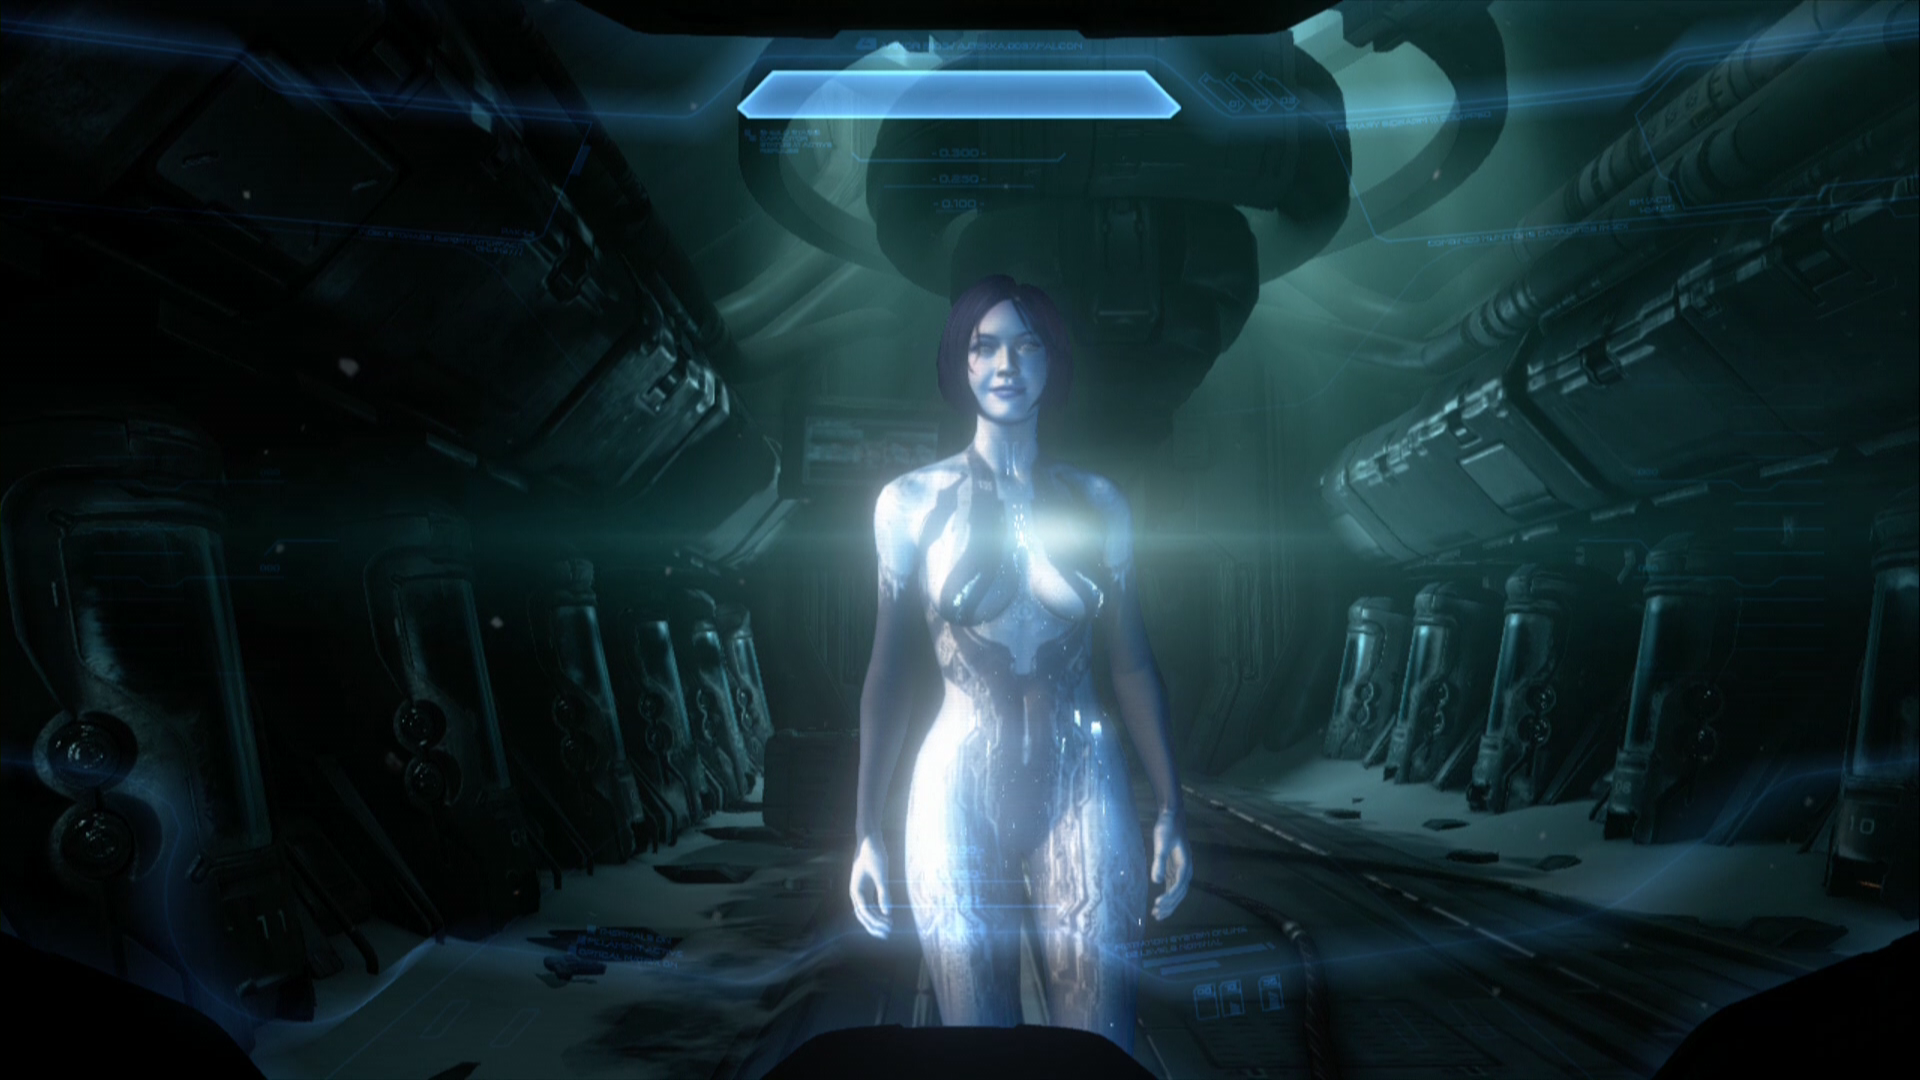 Halo 4 Xbox 360 Talking to Cortana after exiting the cryo-tube.